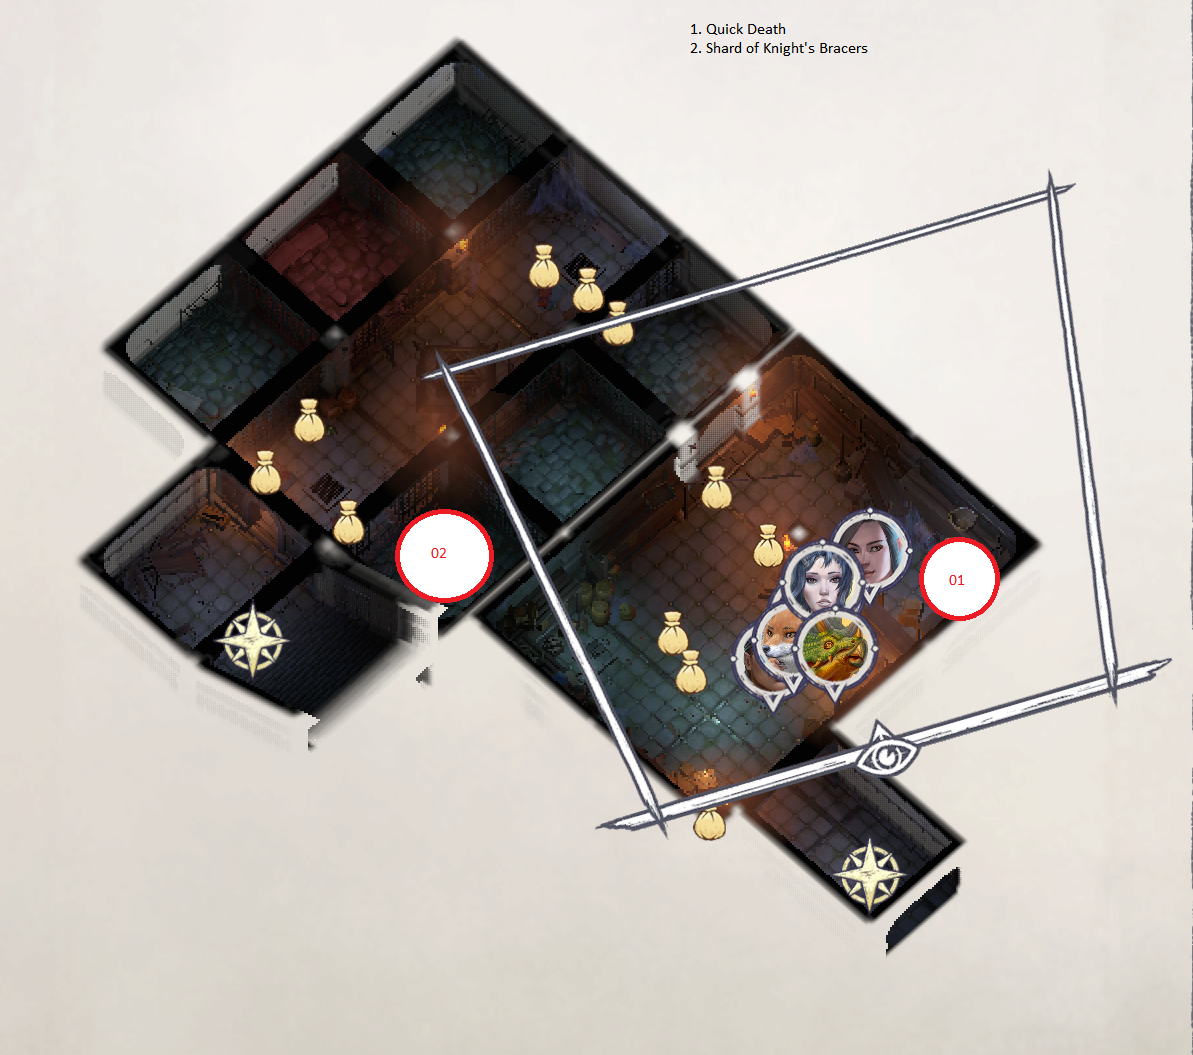 Pathfinder: Wrath of the Righteous All Items Location in Cave Map Guide - Ch. 2 Item Locations - C68A6D6